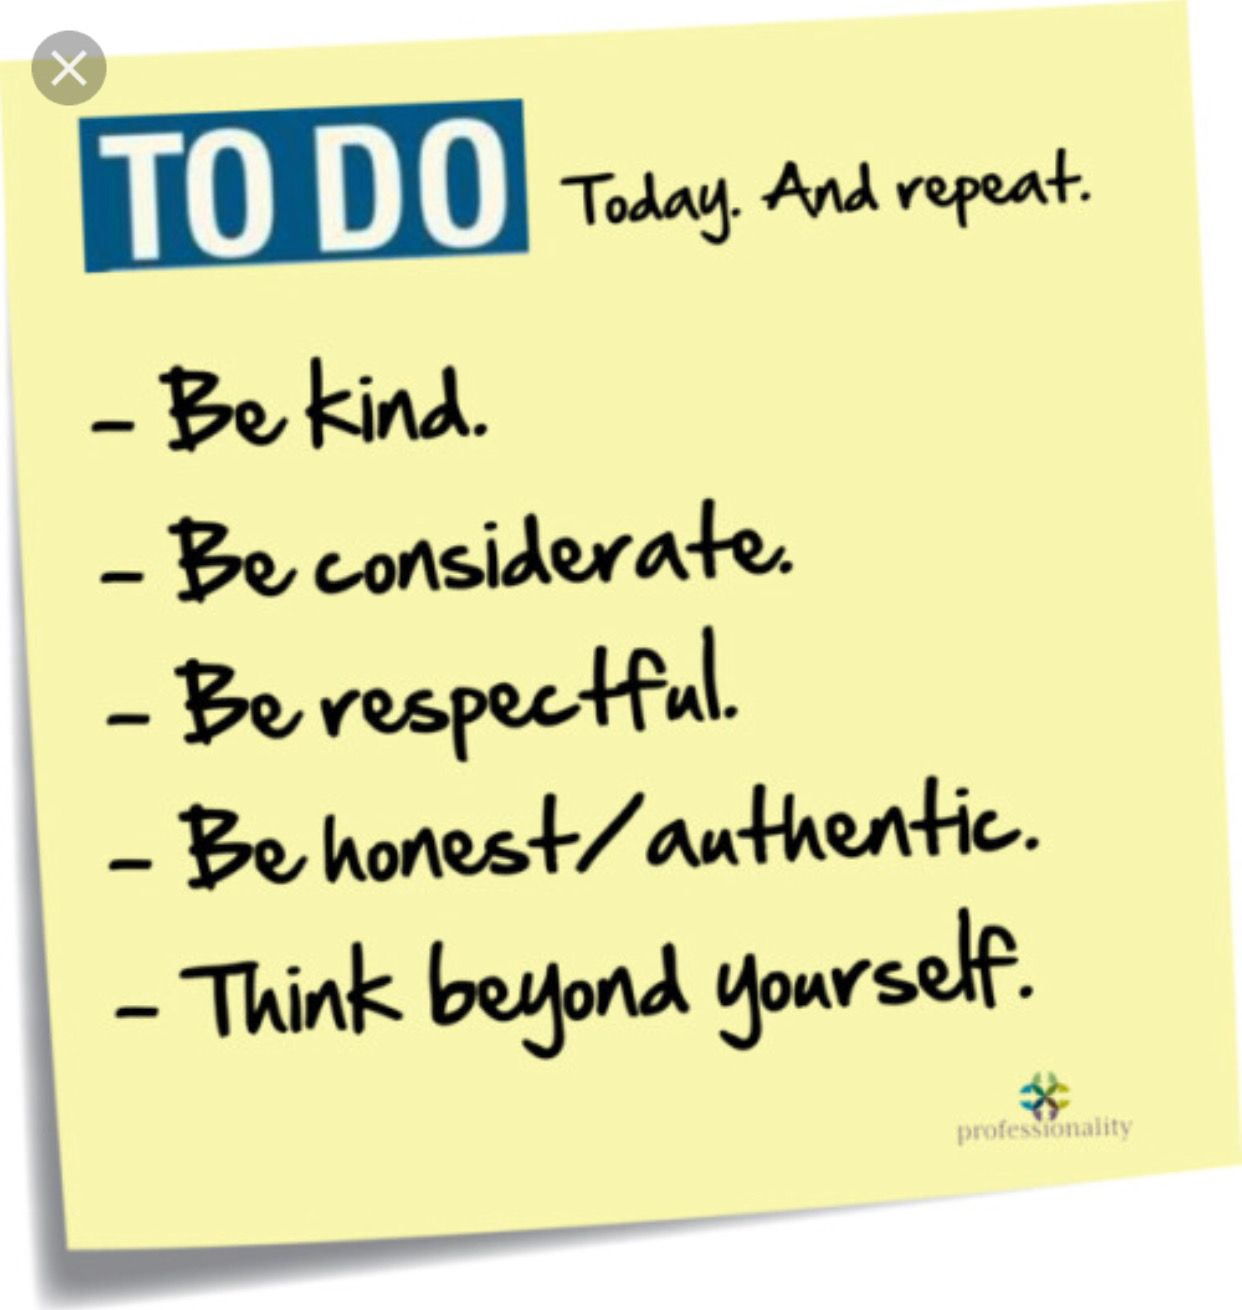 Pin by Pauline McCauley on Kindness Workplace quotes